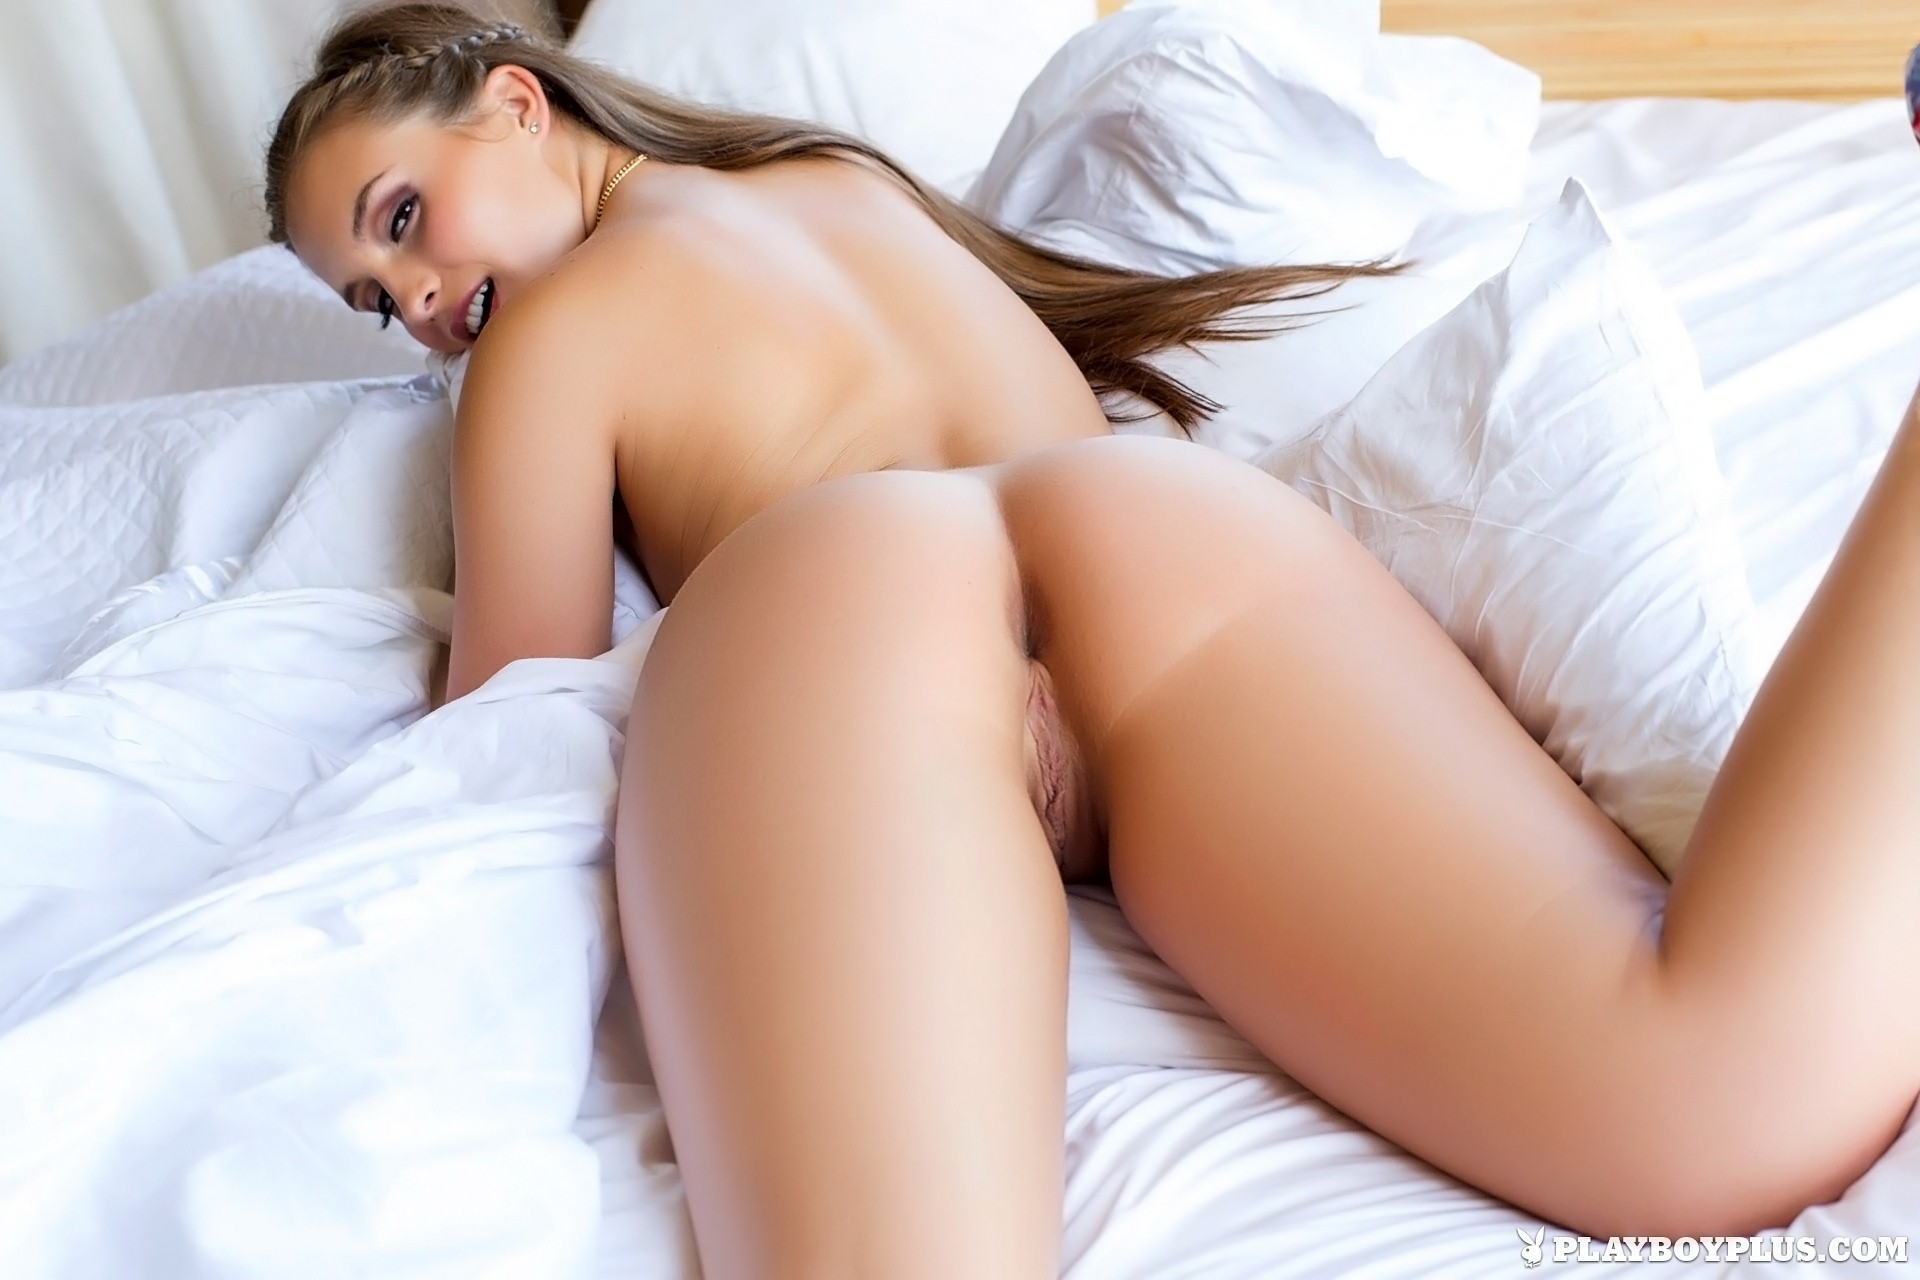 Girl ass young very naked